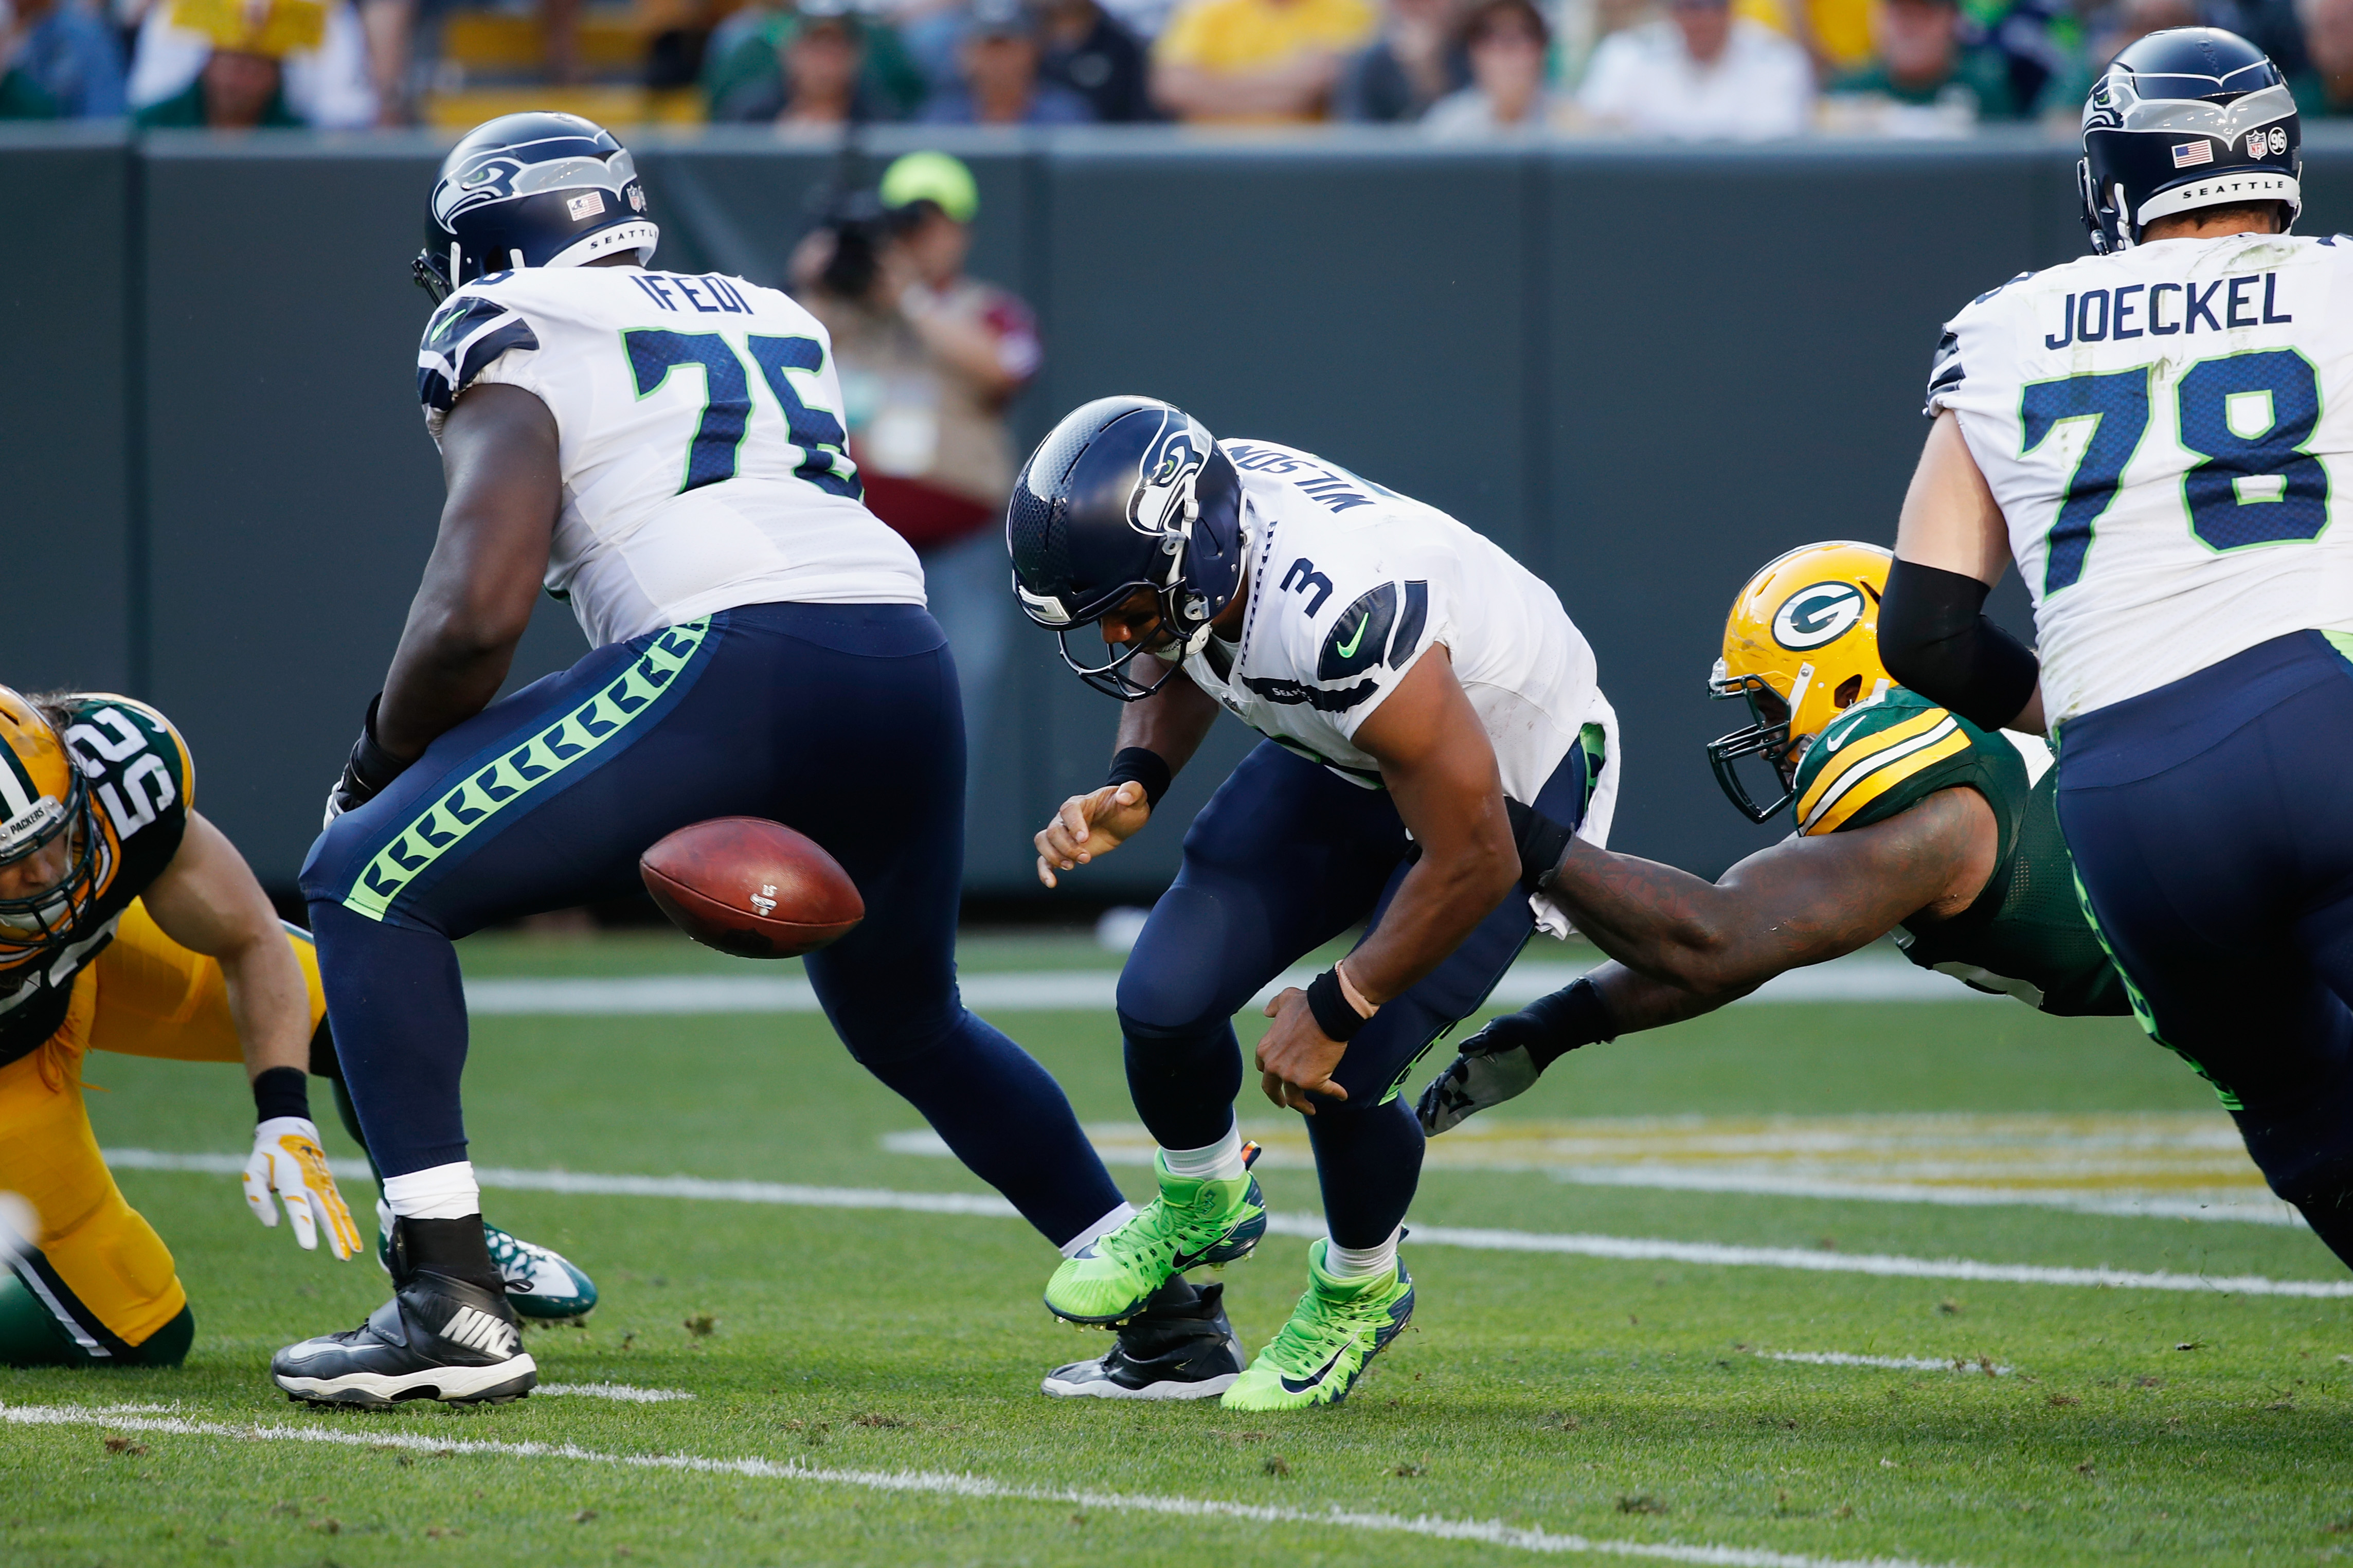 Seahawks Dismal Offensive Line Hurts Fantasy Prospects